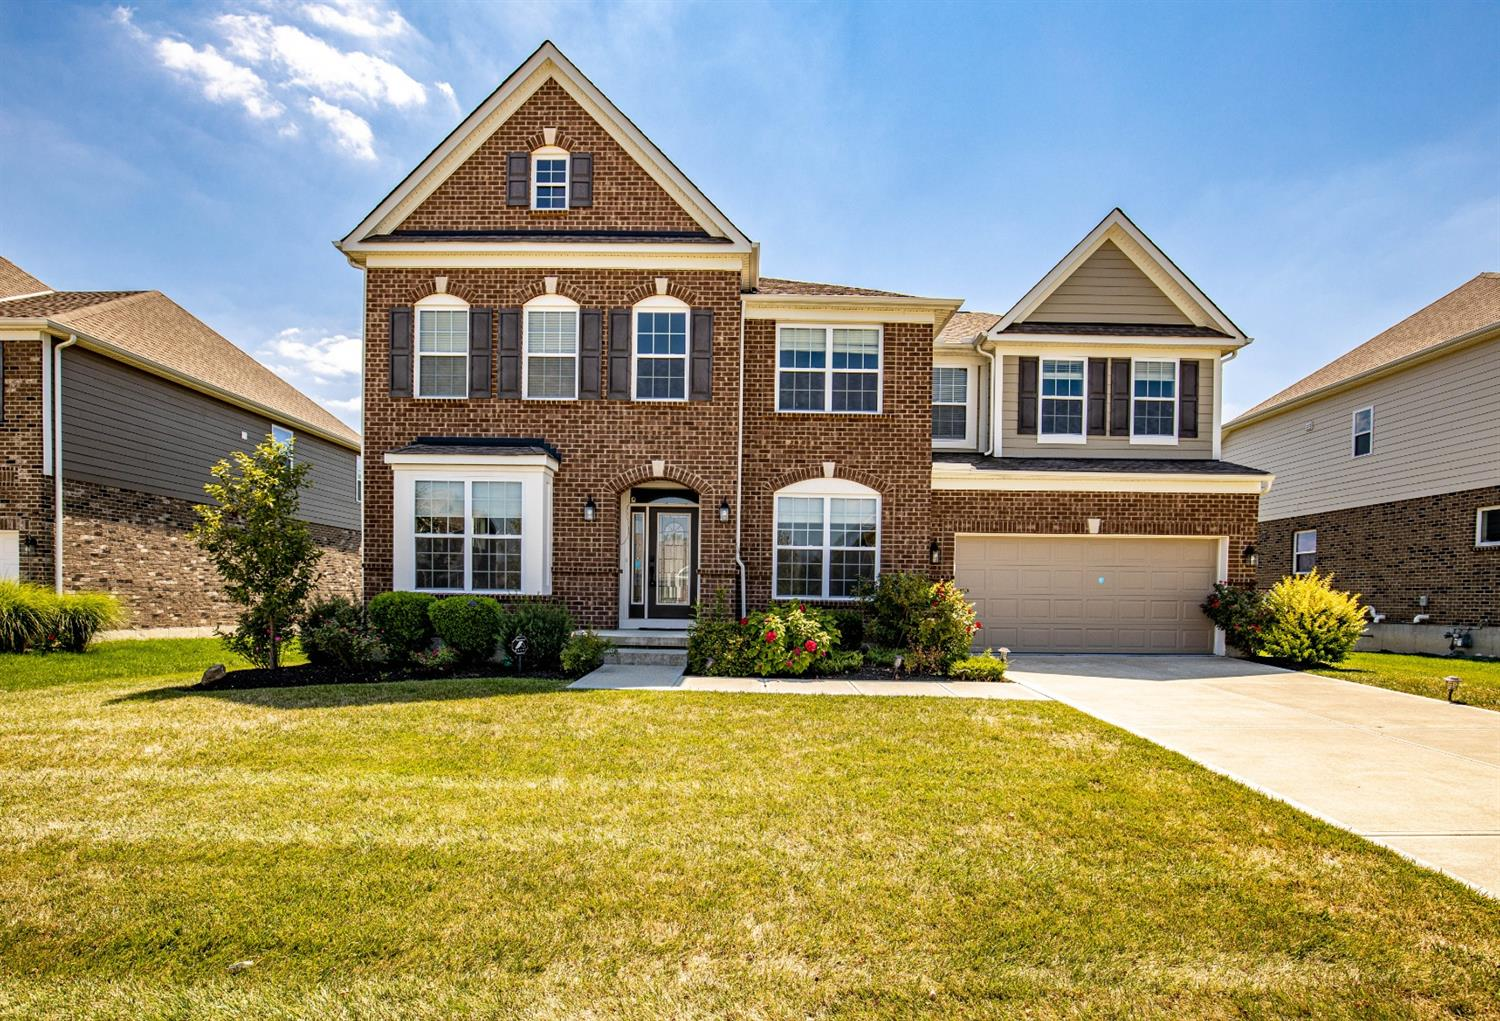 6713 Palmetto Dr Deerfield Twp., OH